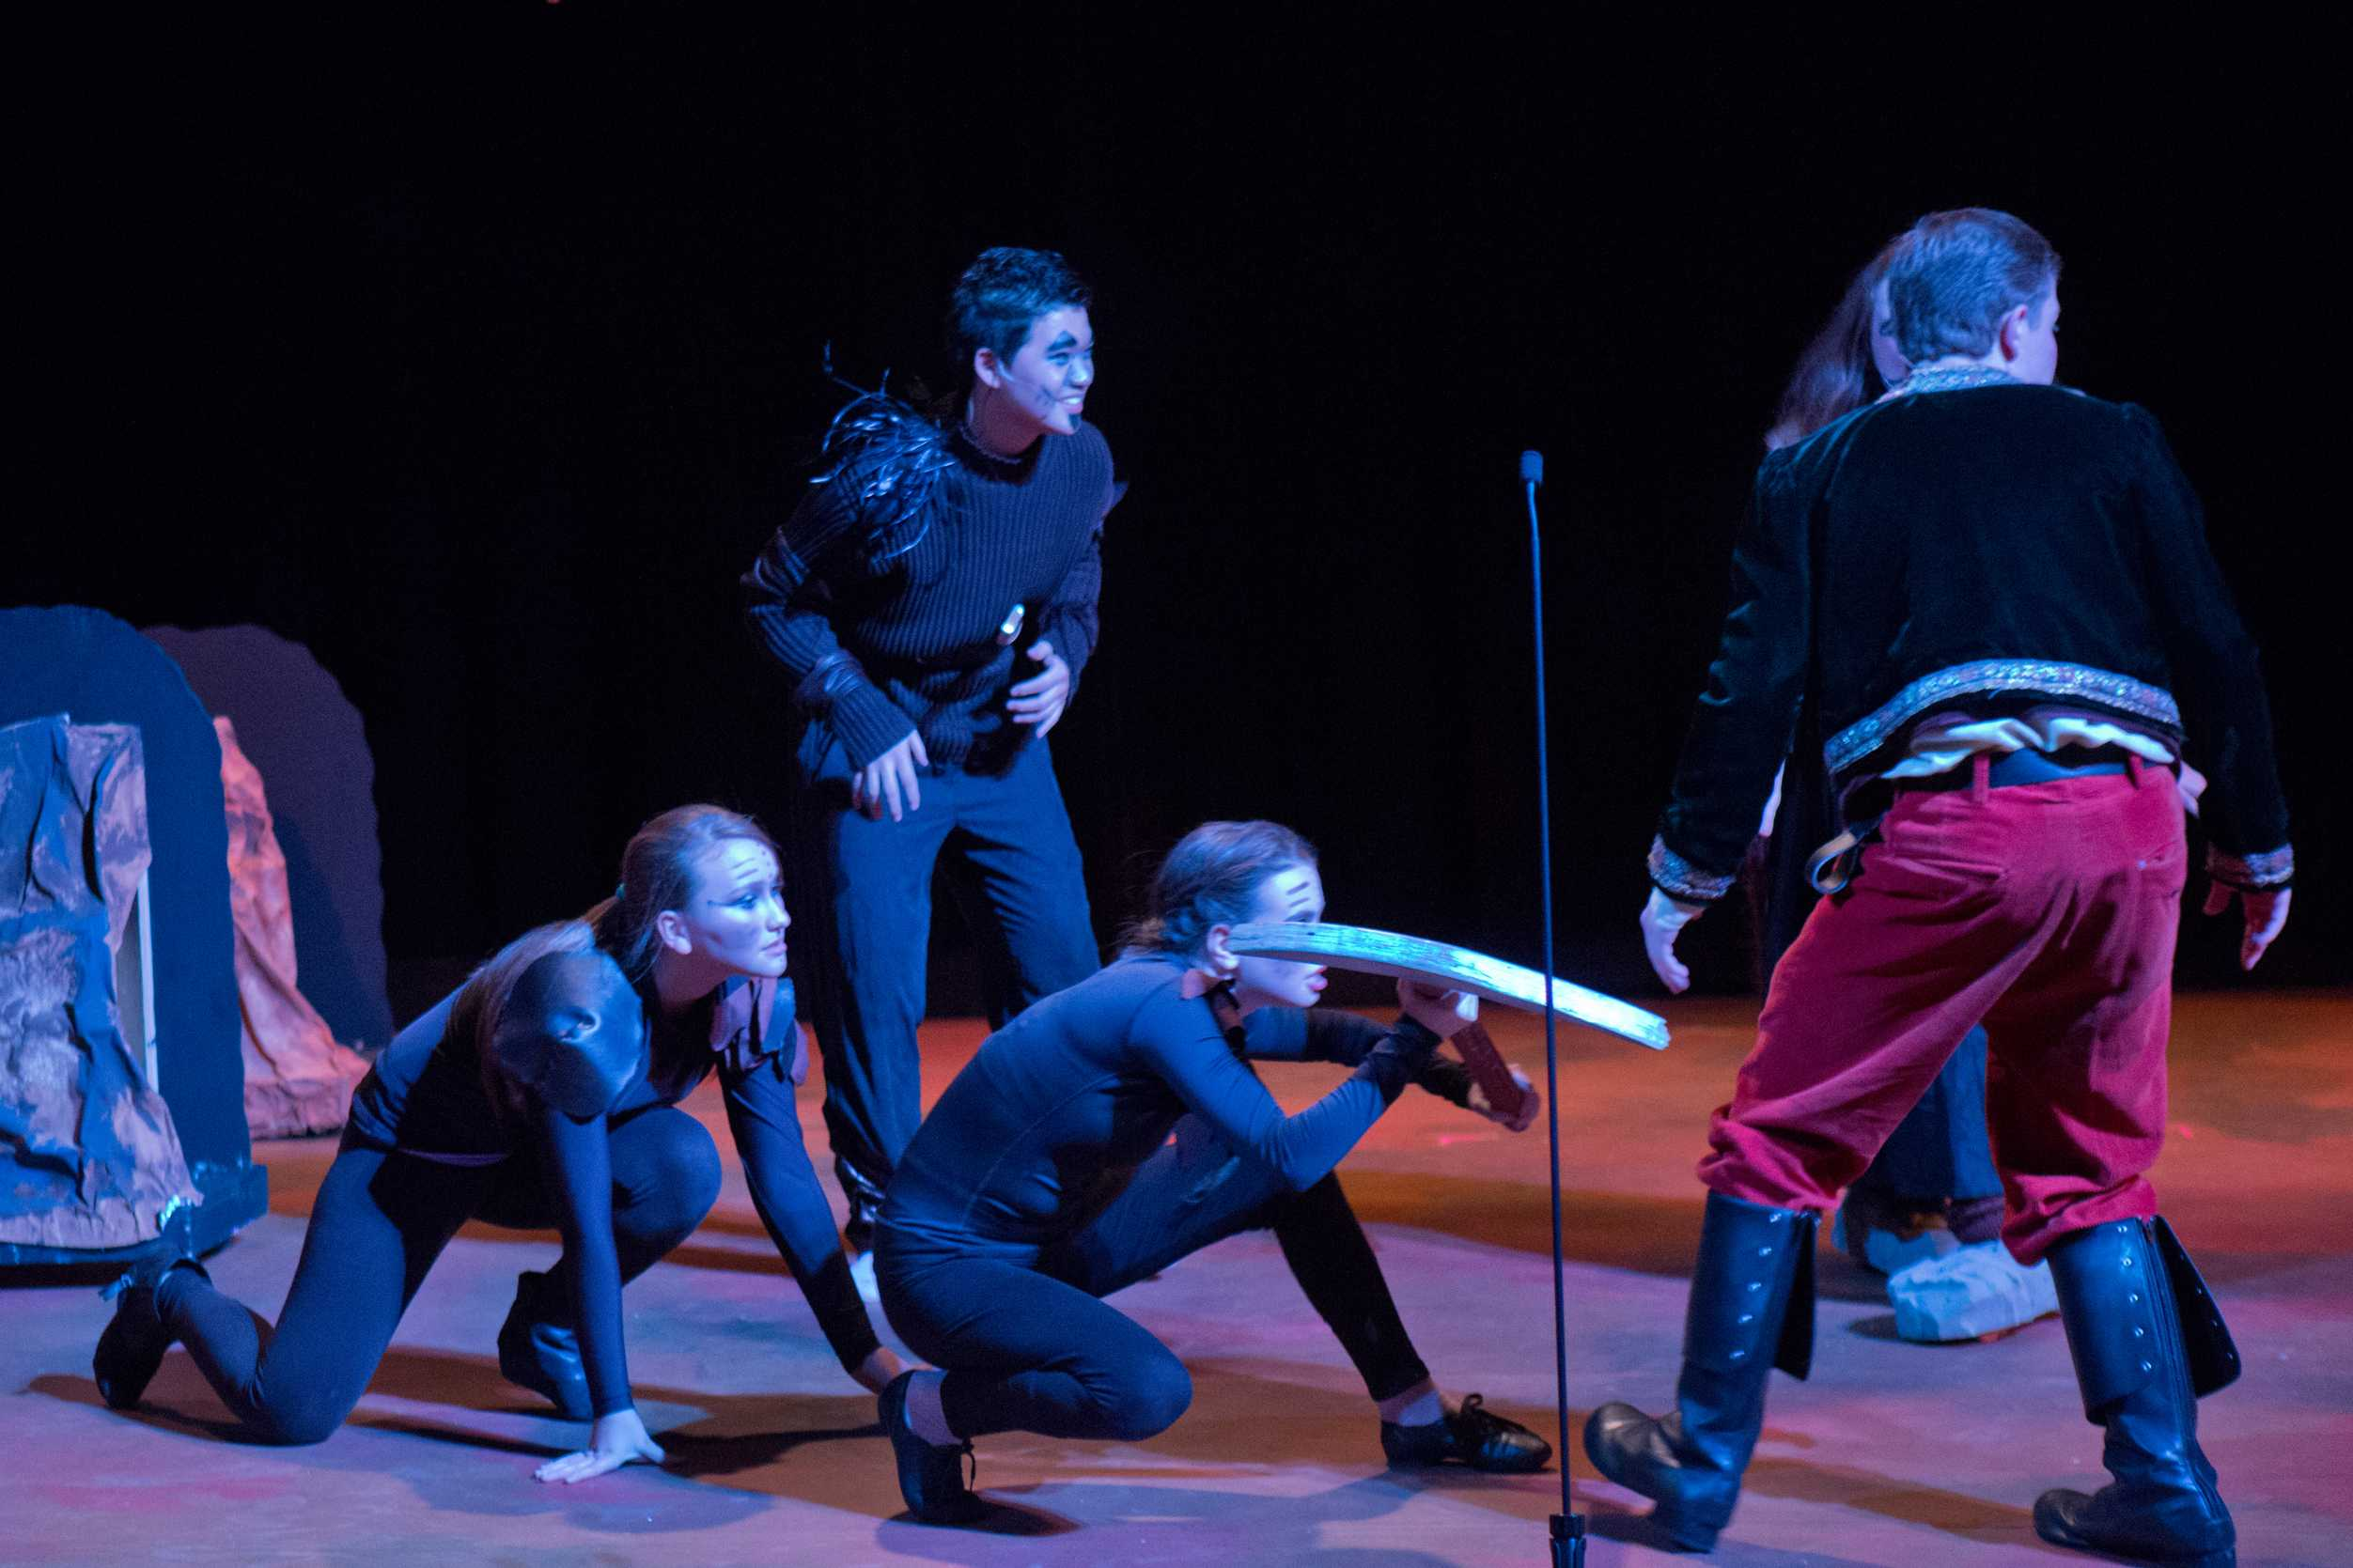 In+Stragecraft%2C+students+learn+what+it+takes+to+orchestrate+live+productions.